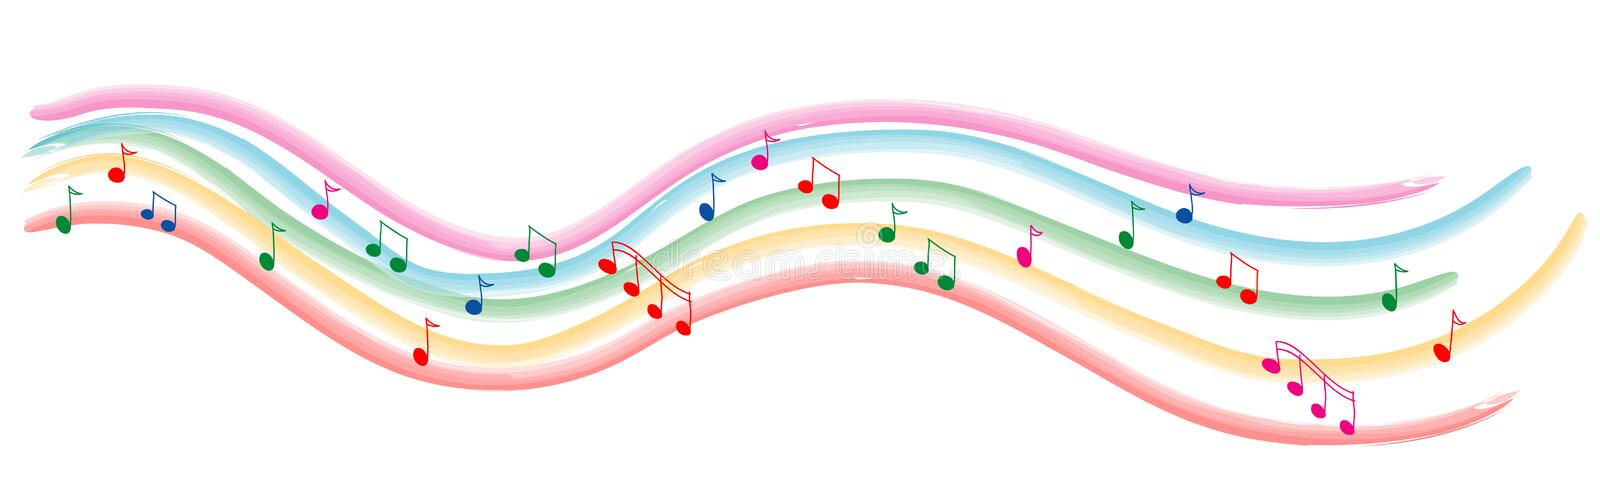 Colored line of music royalty free illustration